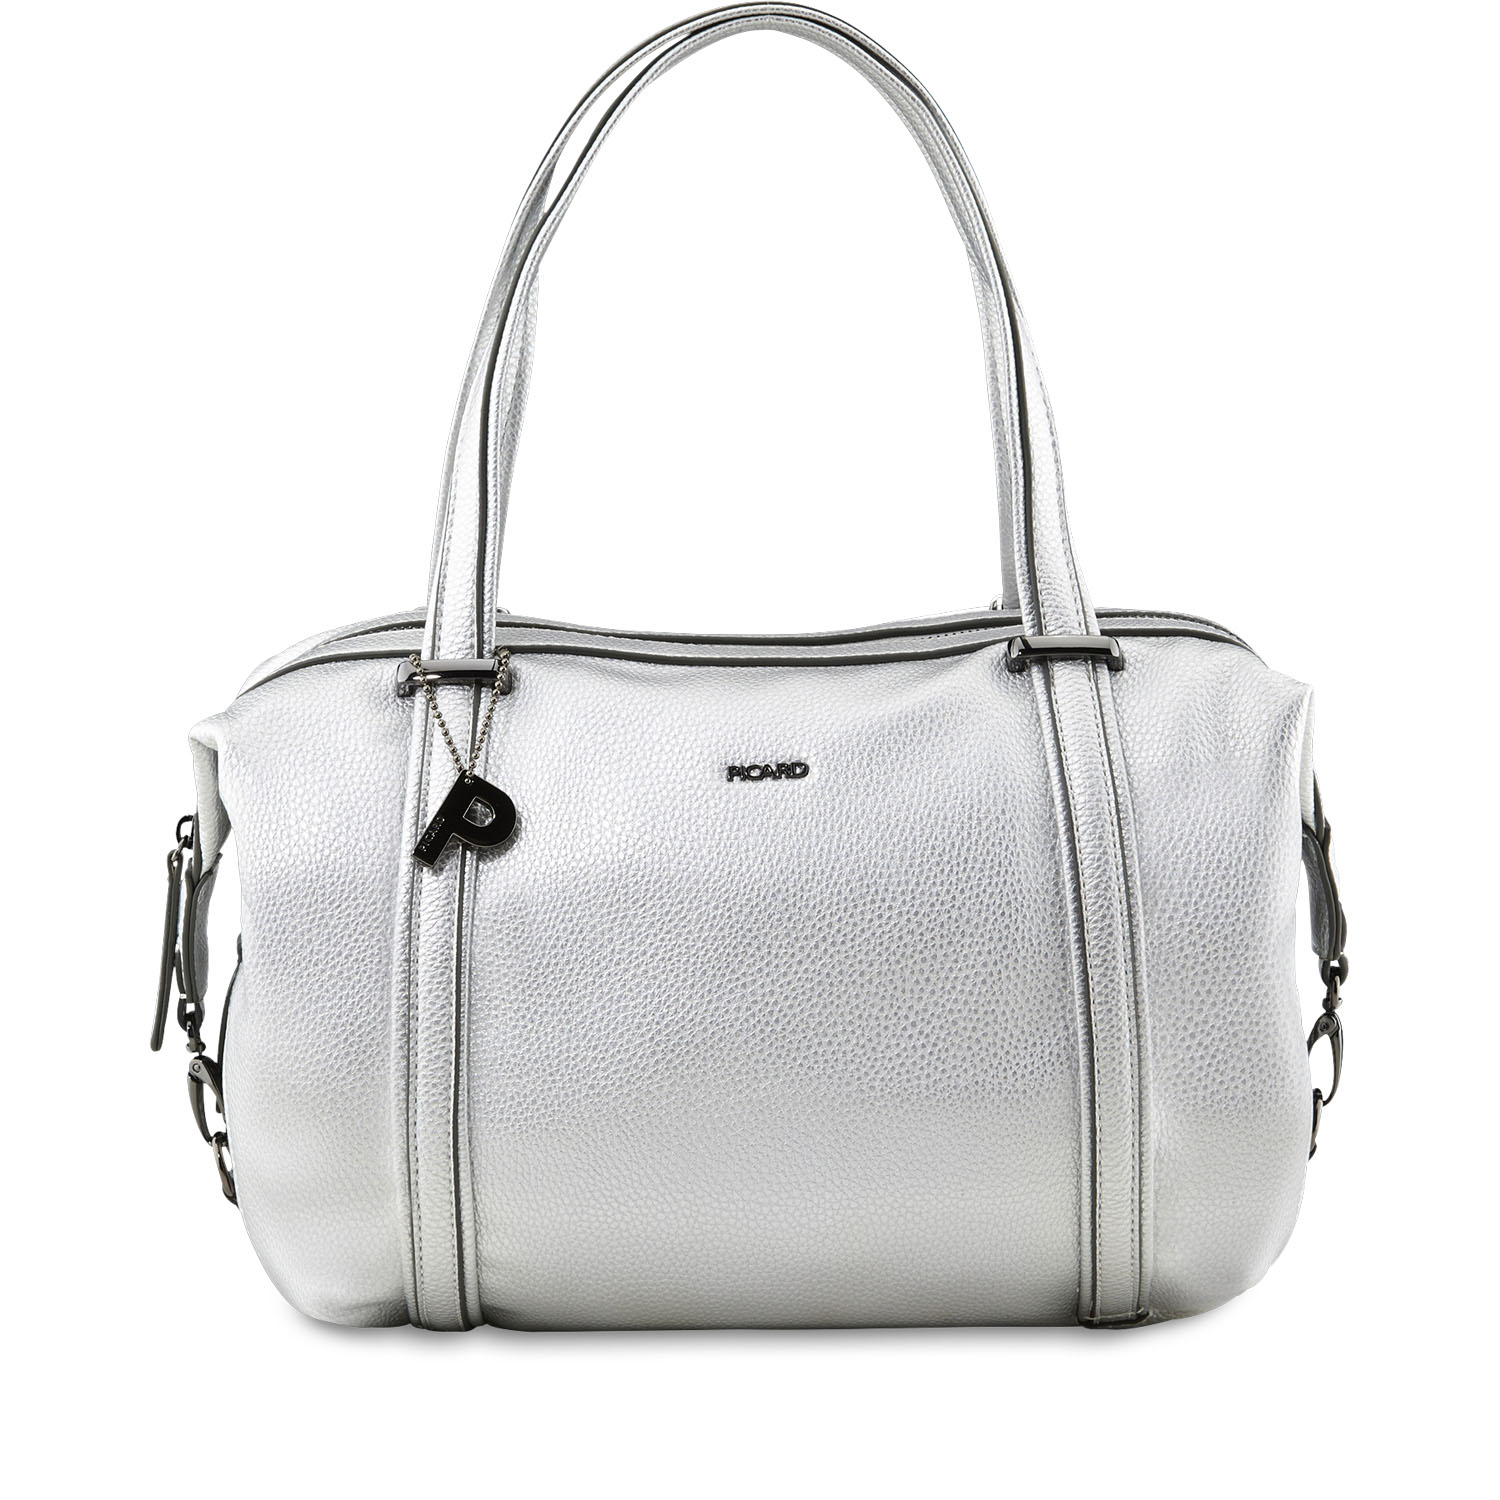 Picard Pleasure Damentasche Shopper 2410 silber